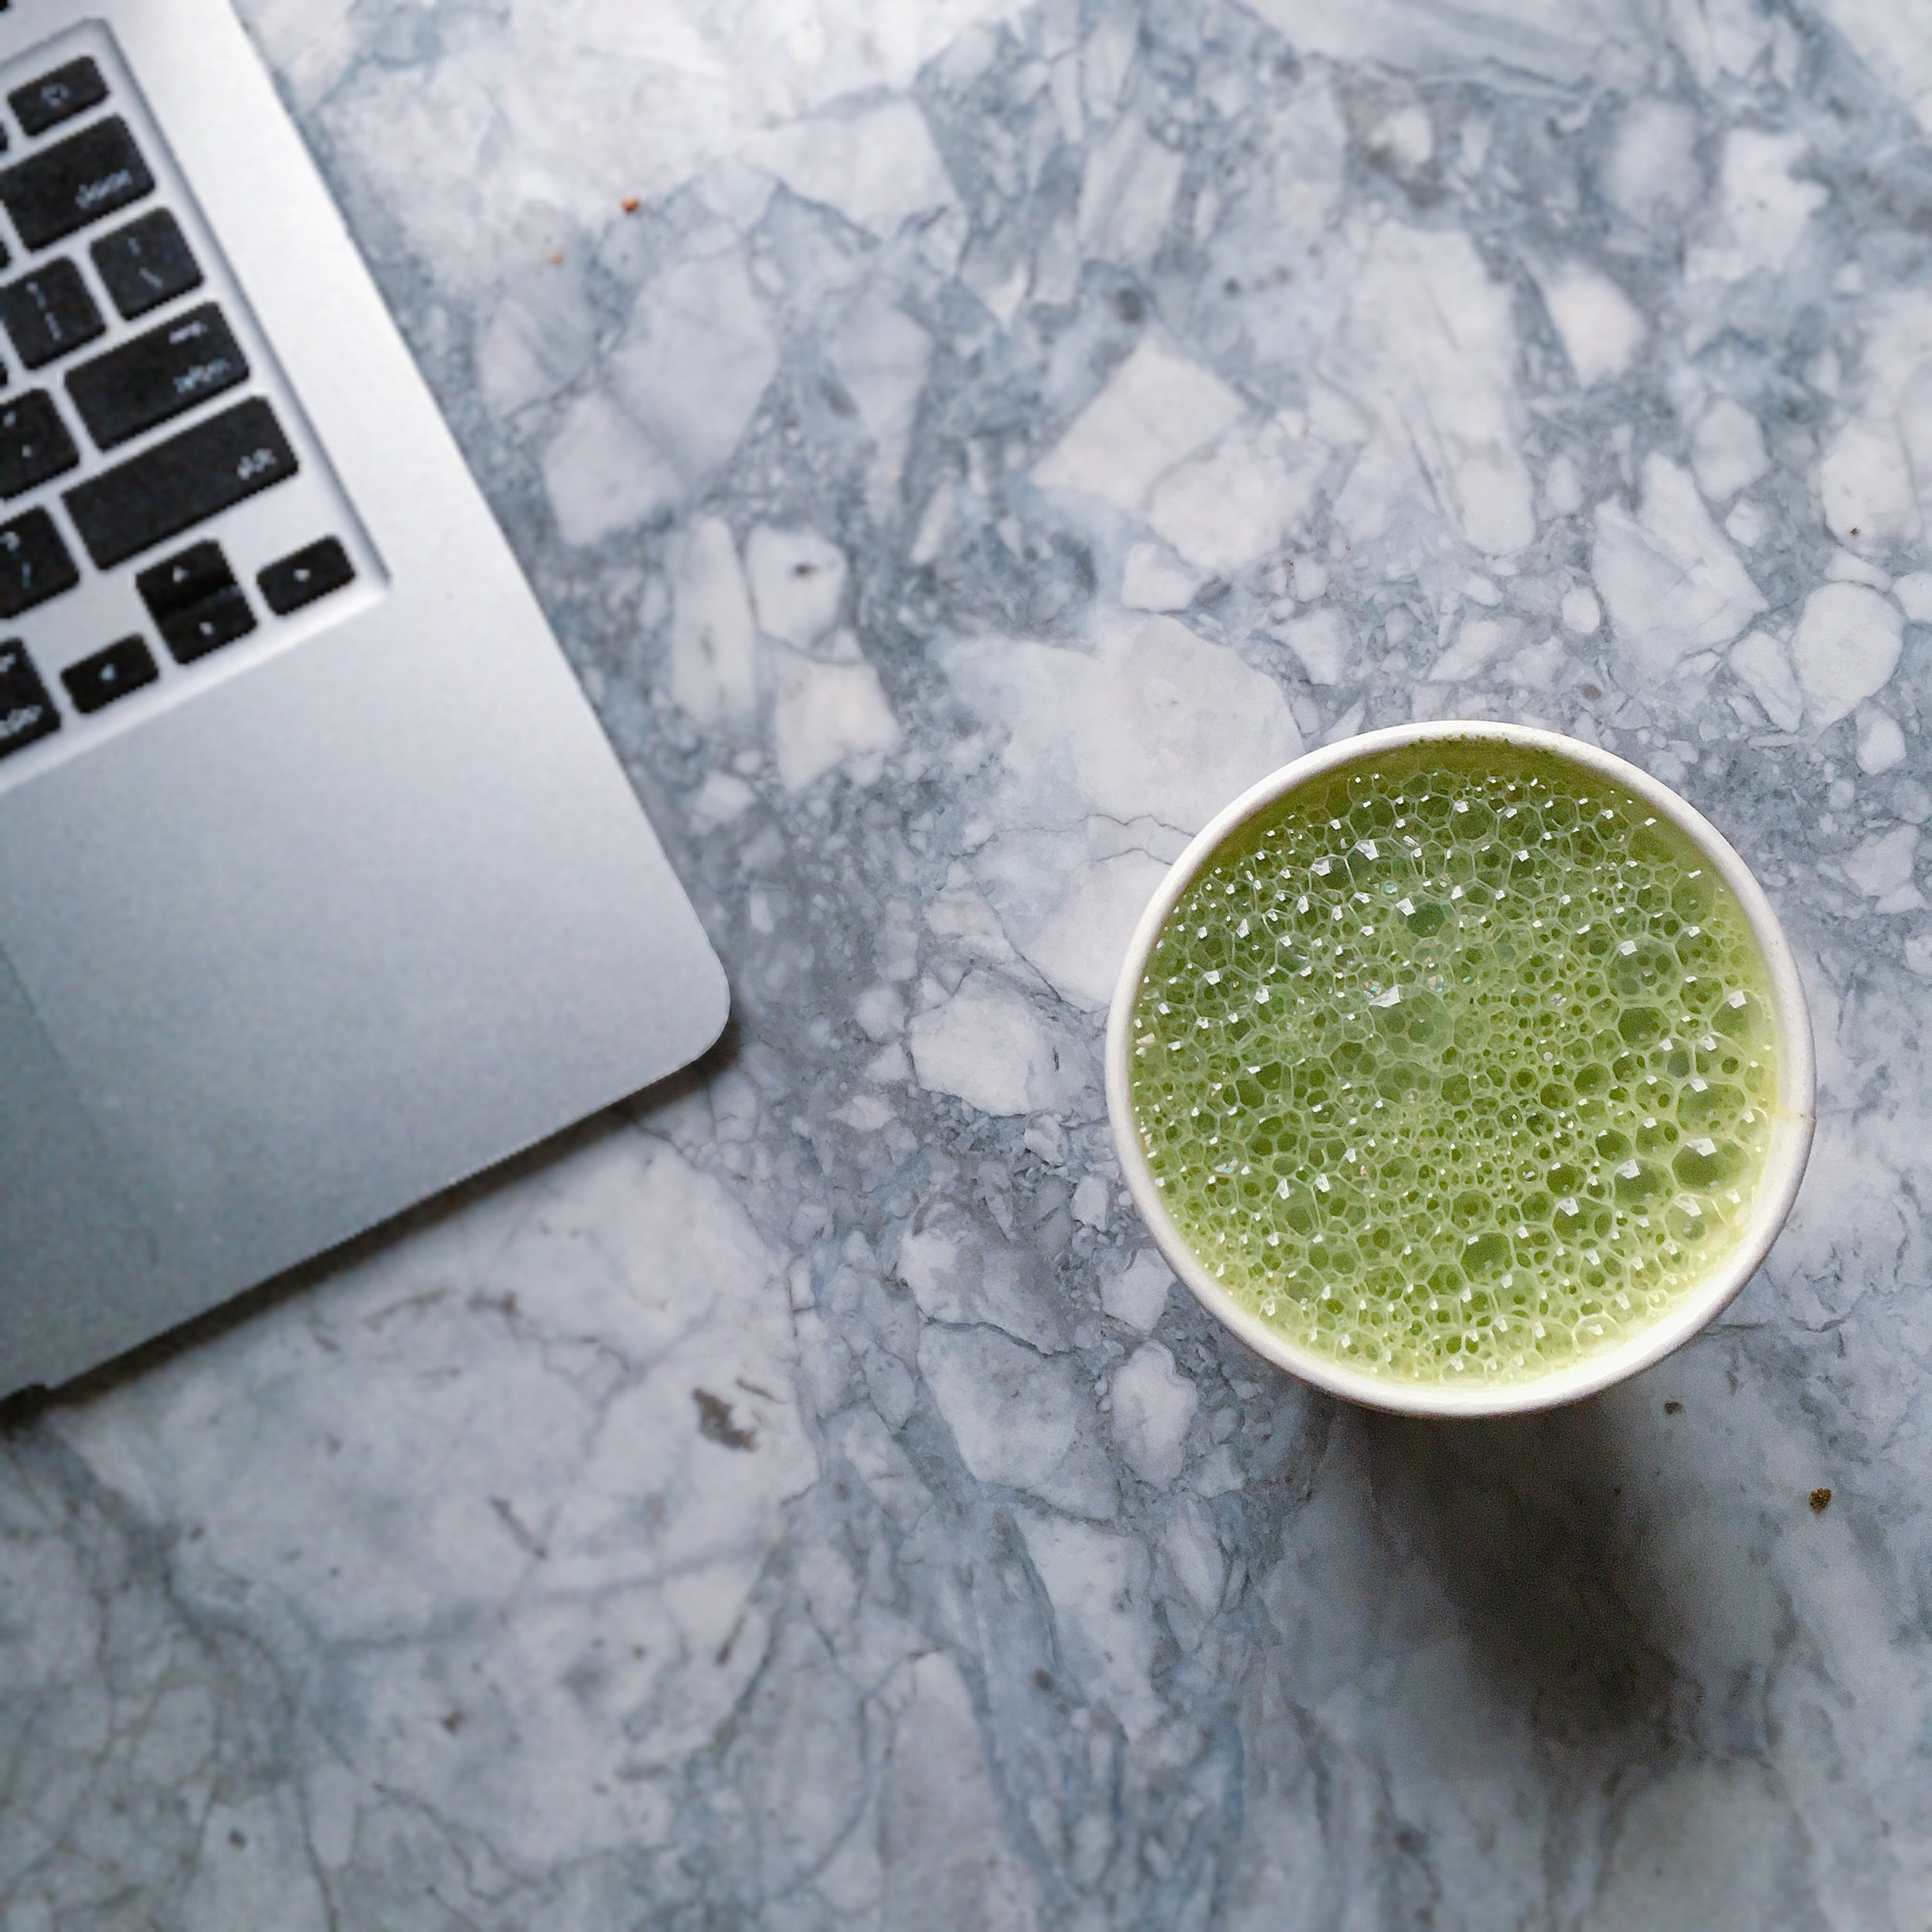 Drink You Skin Care - Matcha: A whole new level of superfood.